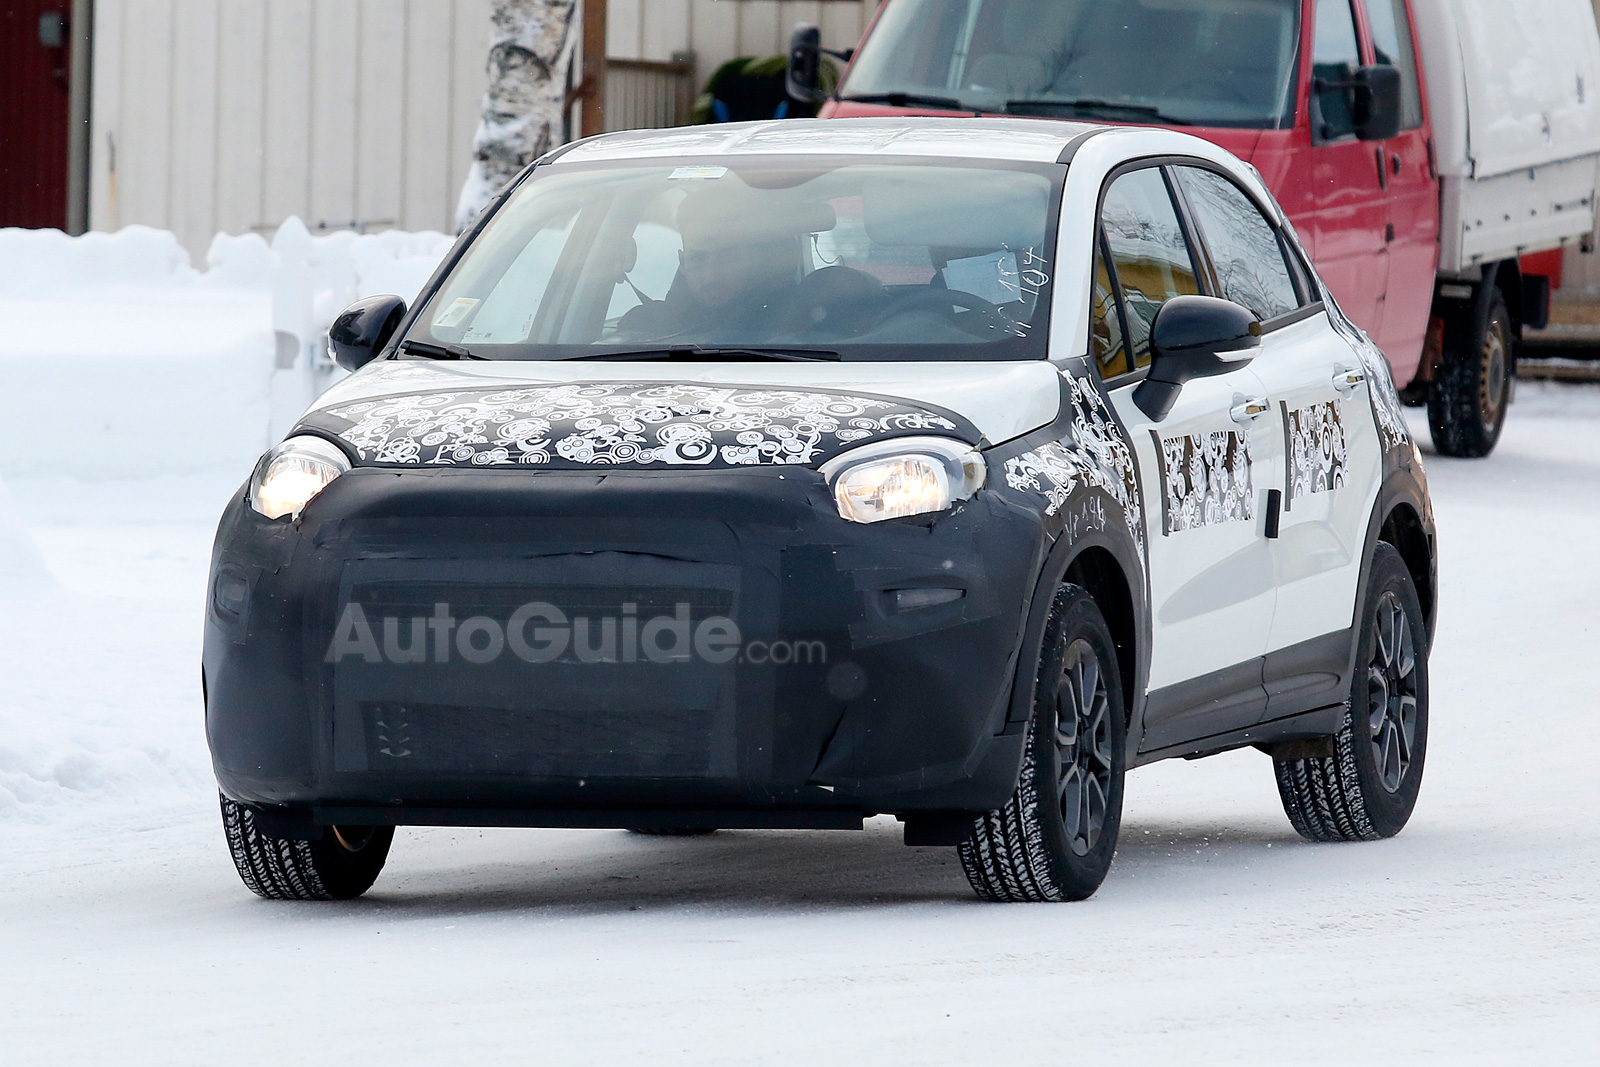 reviews addition of review drive who out autoweek to latest car bought article fiat is the stable